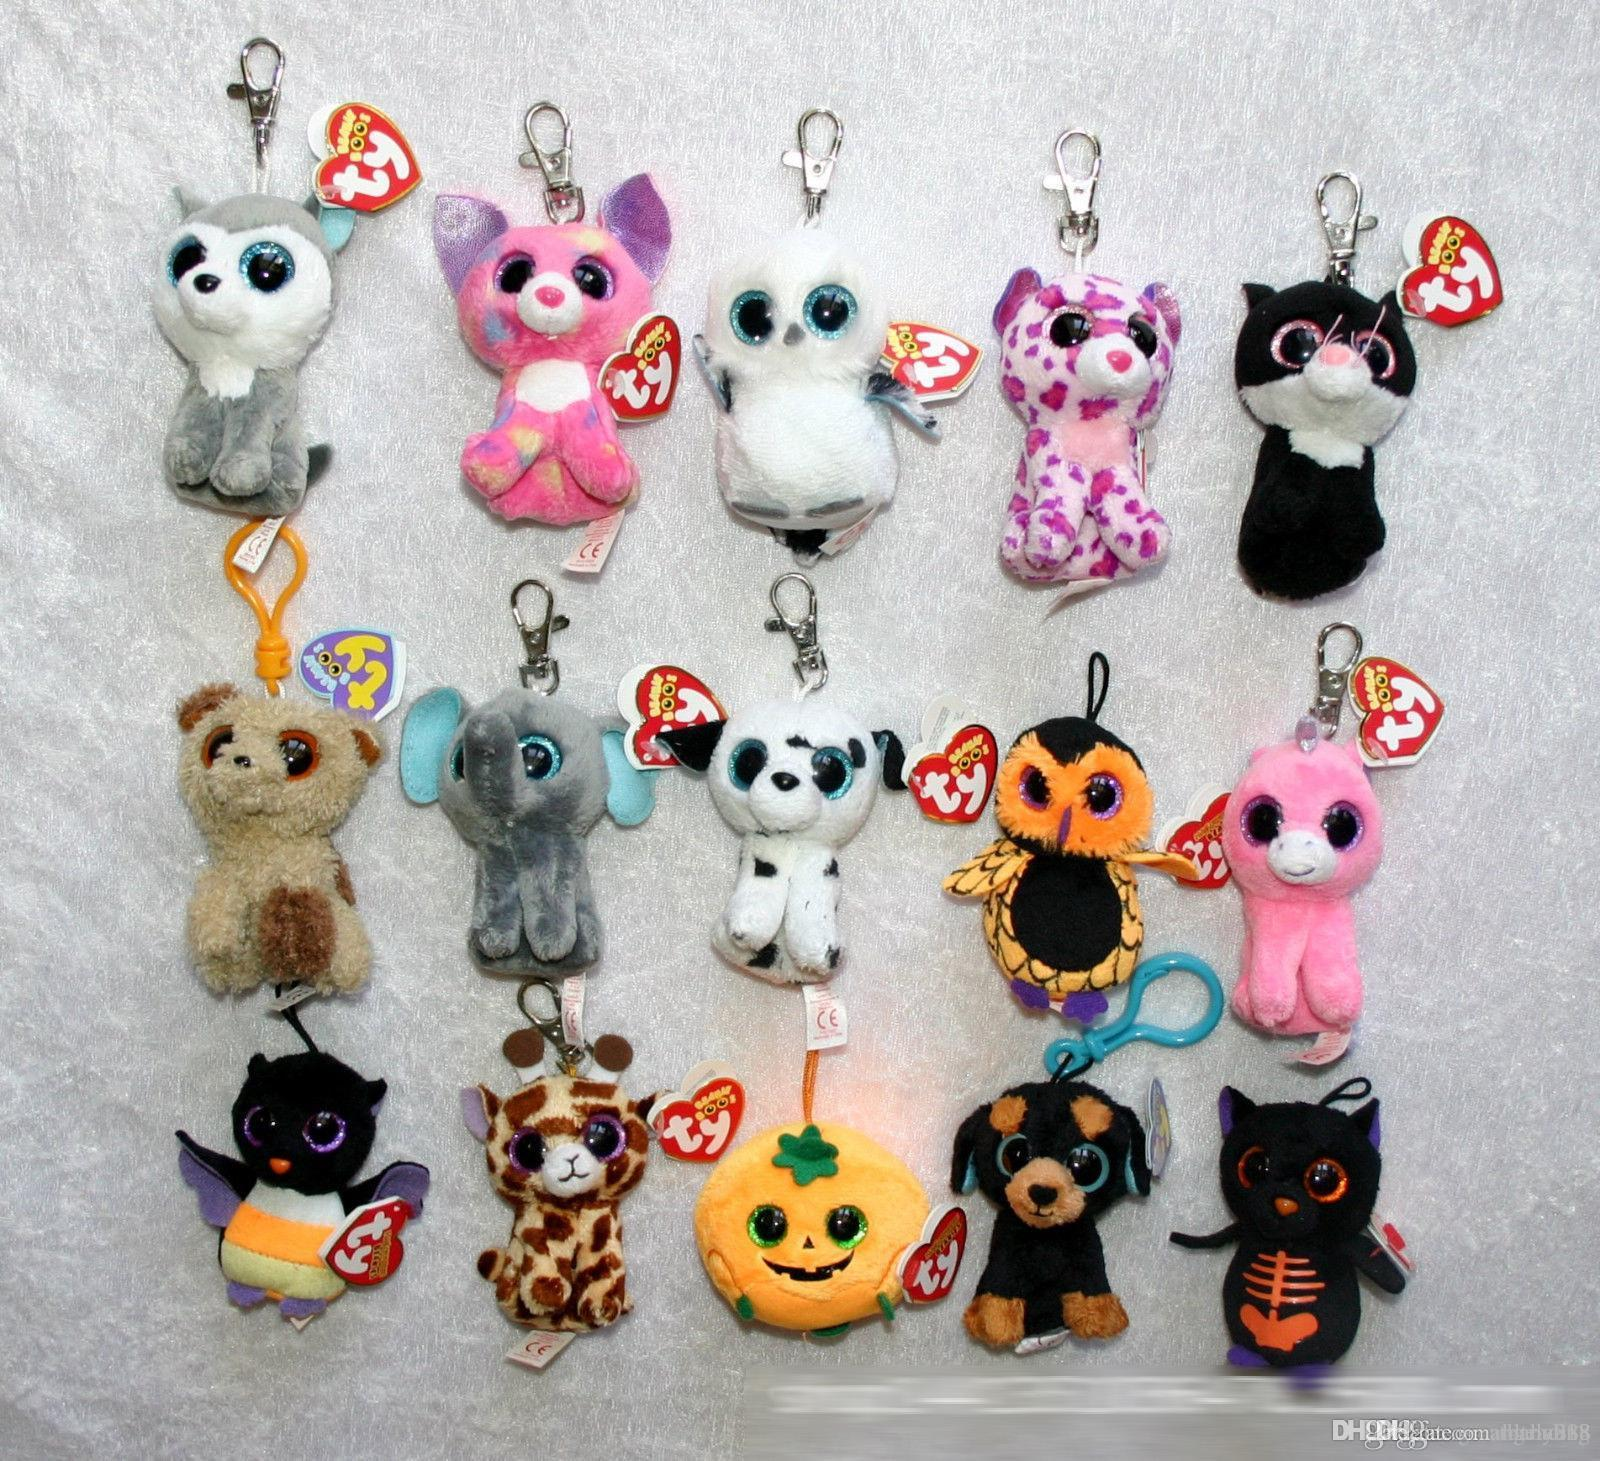 1ab80062702 2019 EMS TY Beanie Boos Plush Toys Keychain Simulation Animal TY Stuffed  Animals Pendant Keychain Super Soft 4inch 10cm Children Gifts E919 From  Hltrading